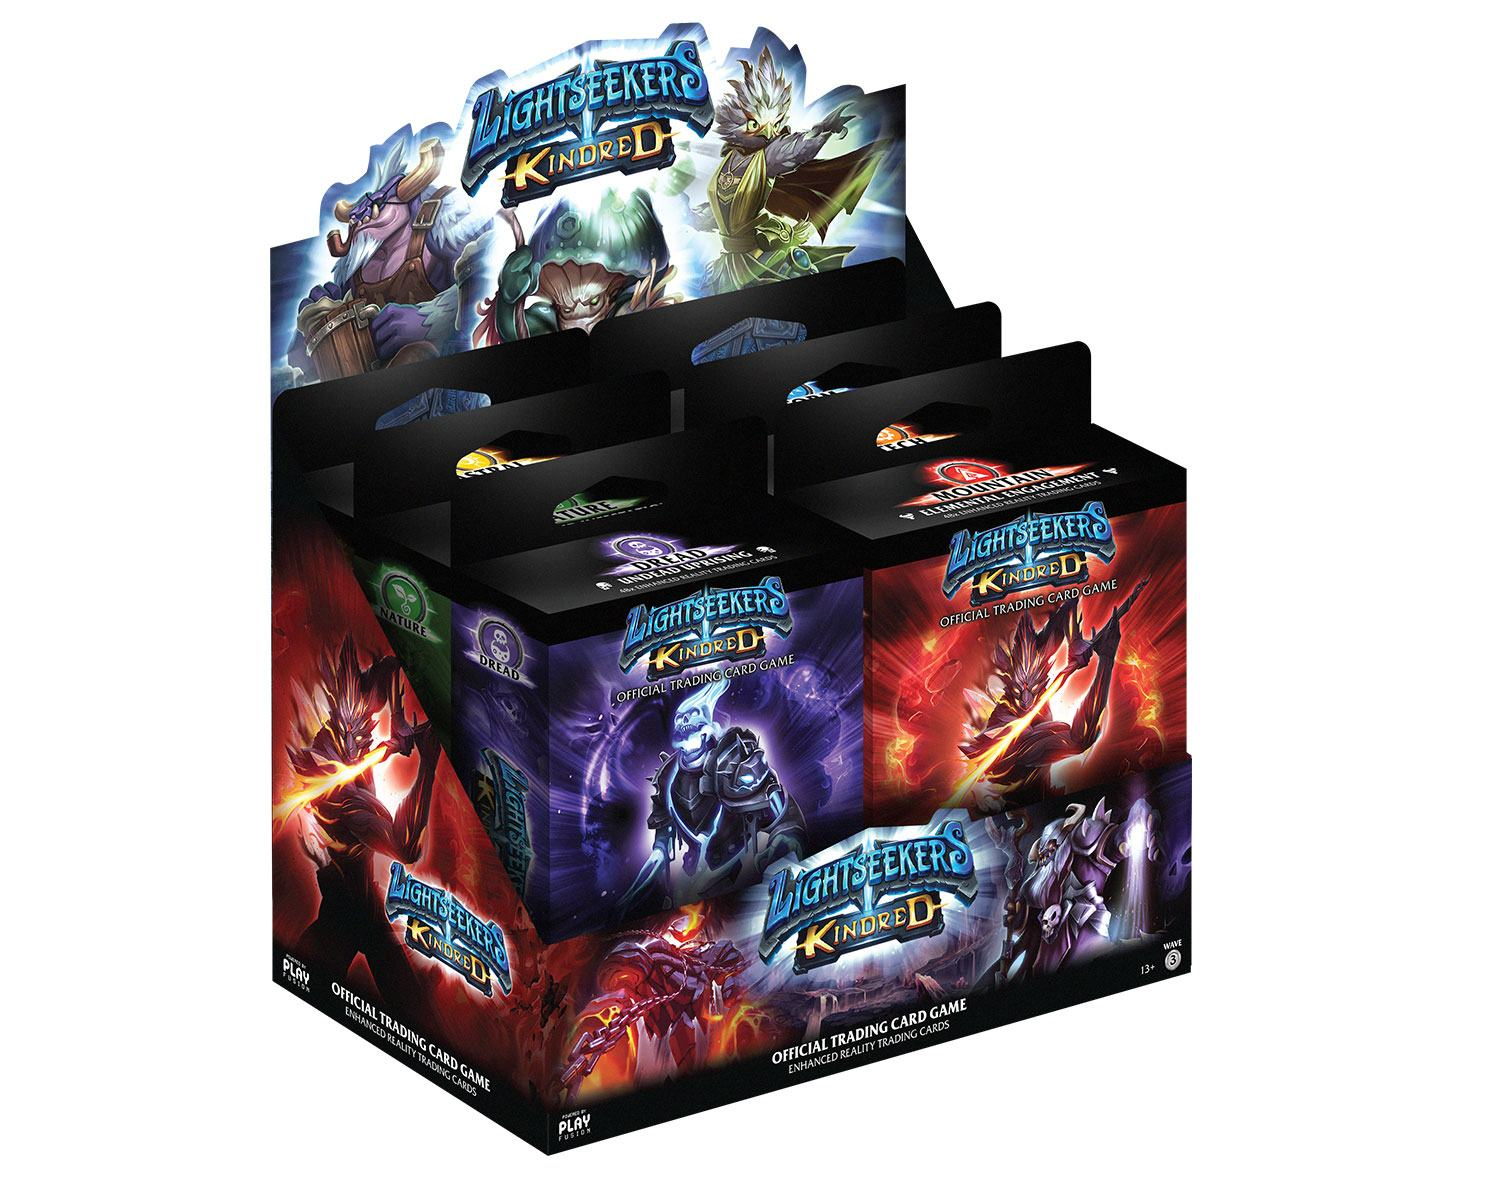 Lightseekers TCG Starter Deck Assortment Wave 3 Kindred (6) german